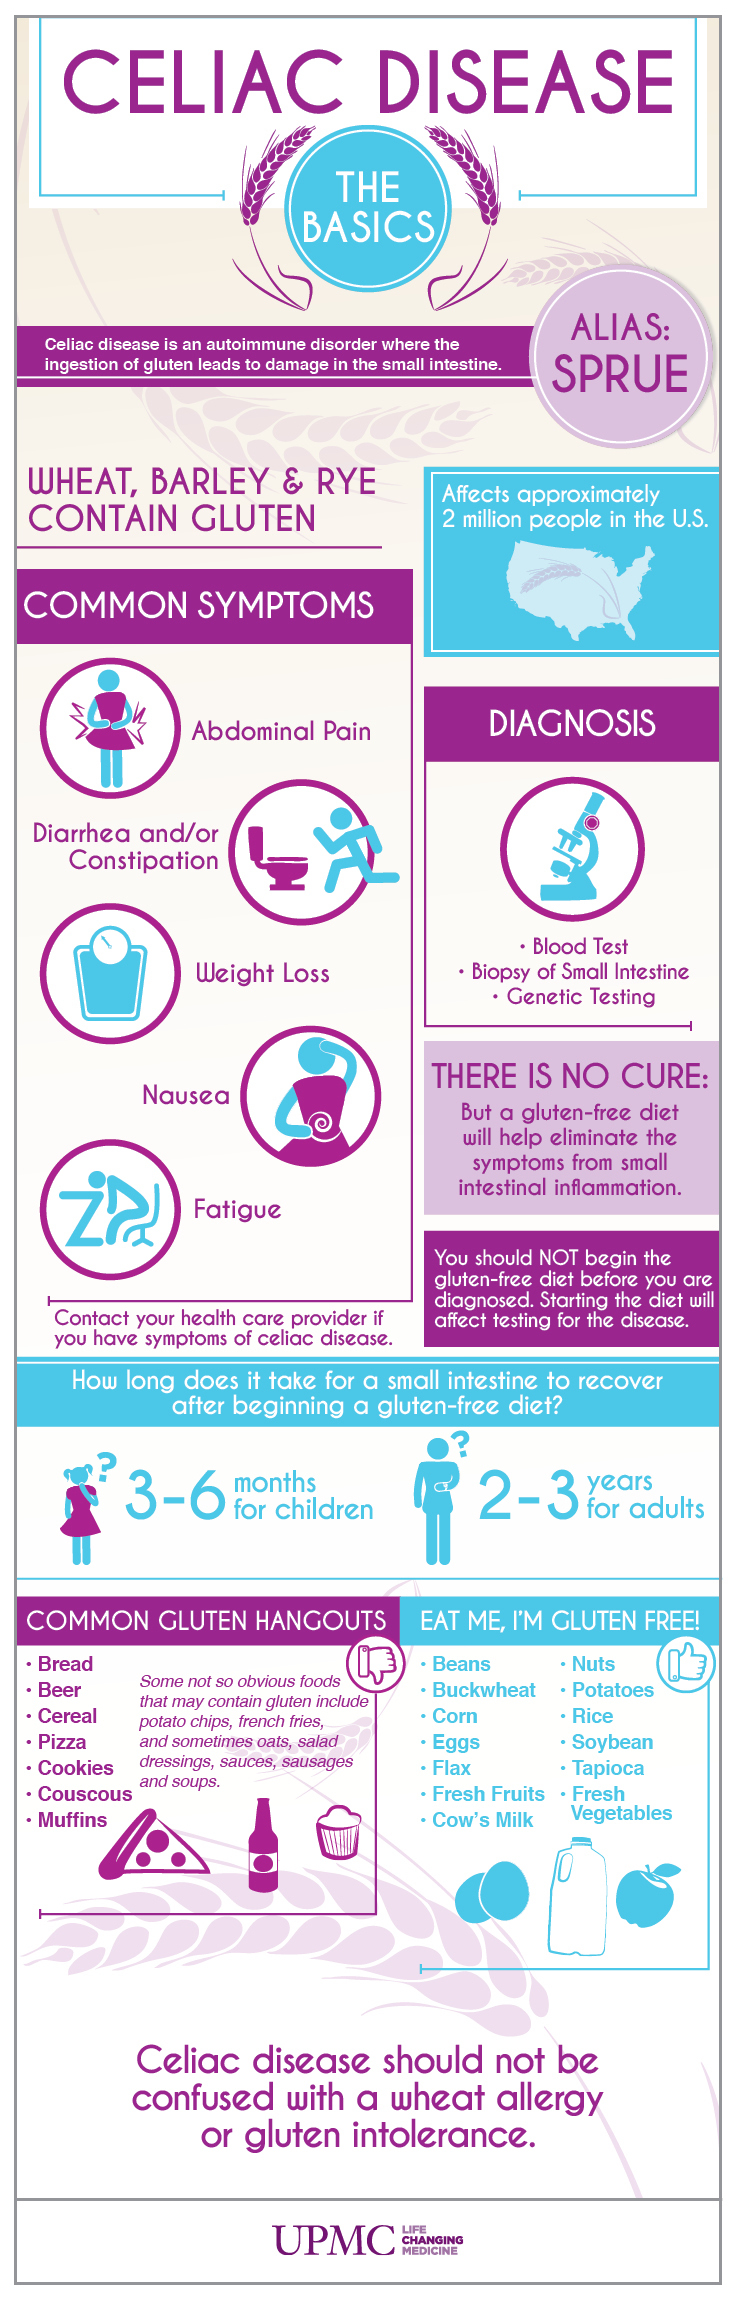 Celiac Disease Causes and Symtoms Infographic | UPMC HealthBeat